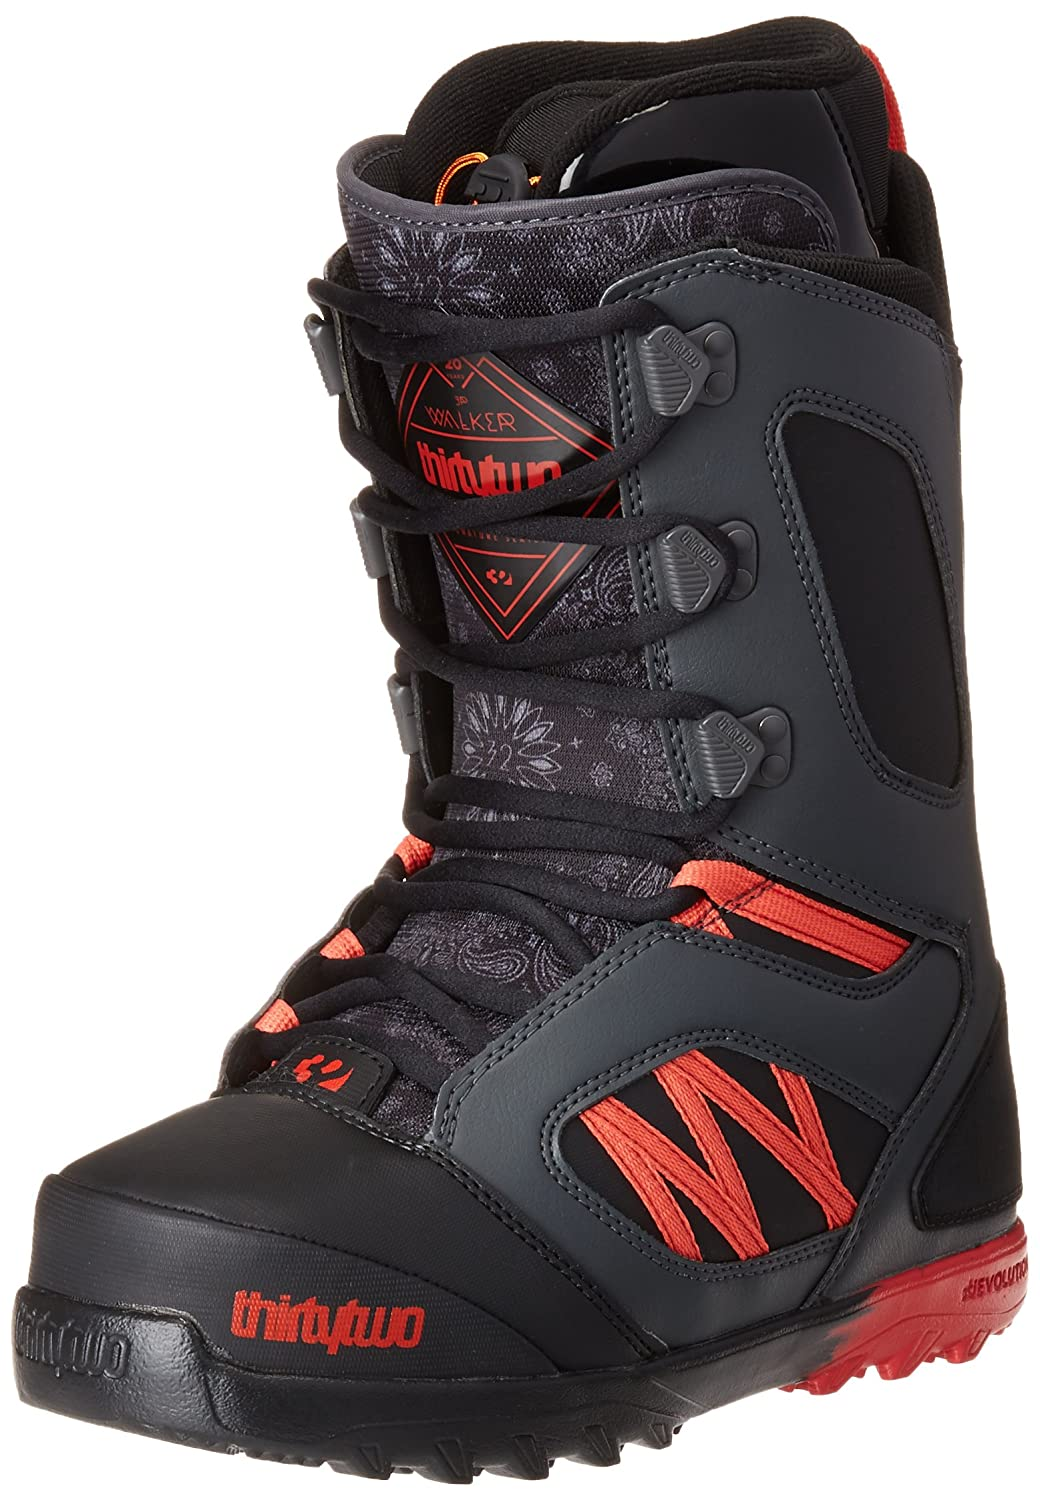 00c1a65a35 Amazon.com : thirtytwo Light JP Snowboard Boots : Sports & Outdoors